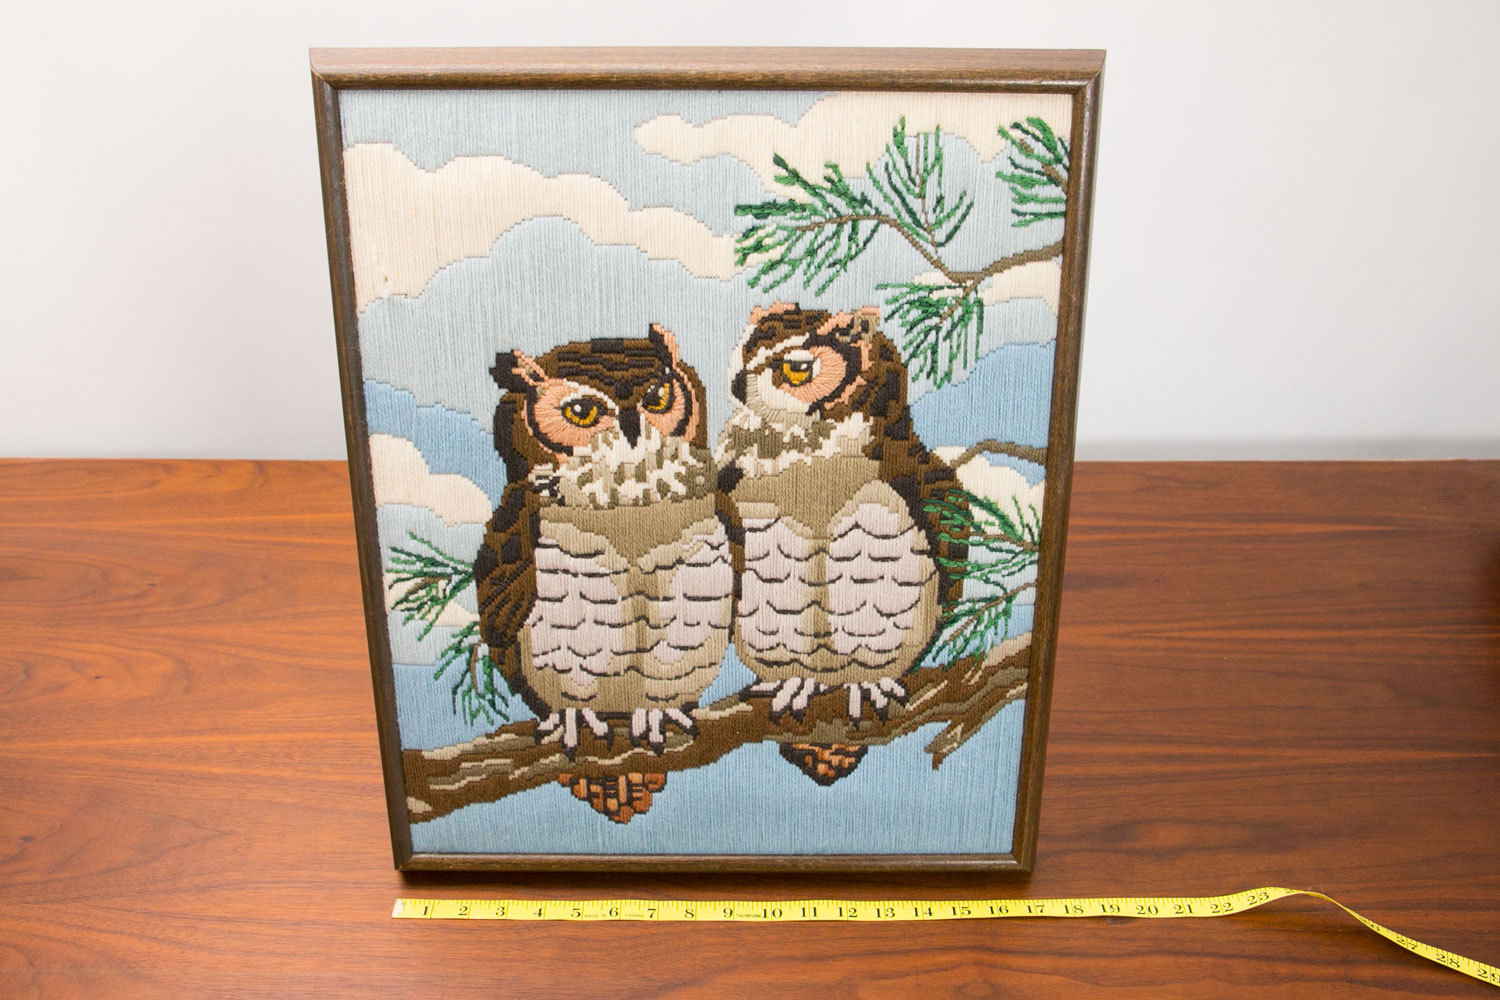 Vintage 1970's Handmade Needlepoint Owls Art - Wood Frame - Two Owls on Branch with Clouds - Mid Century, Rustic, Hipster